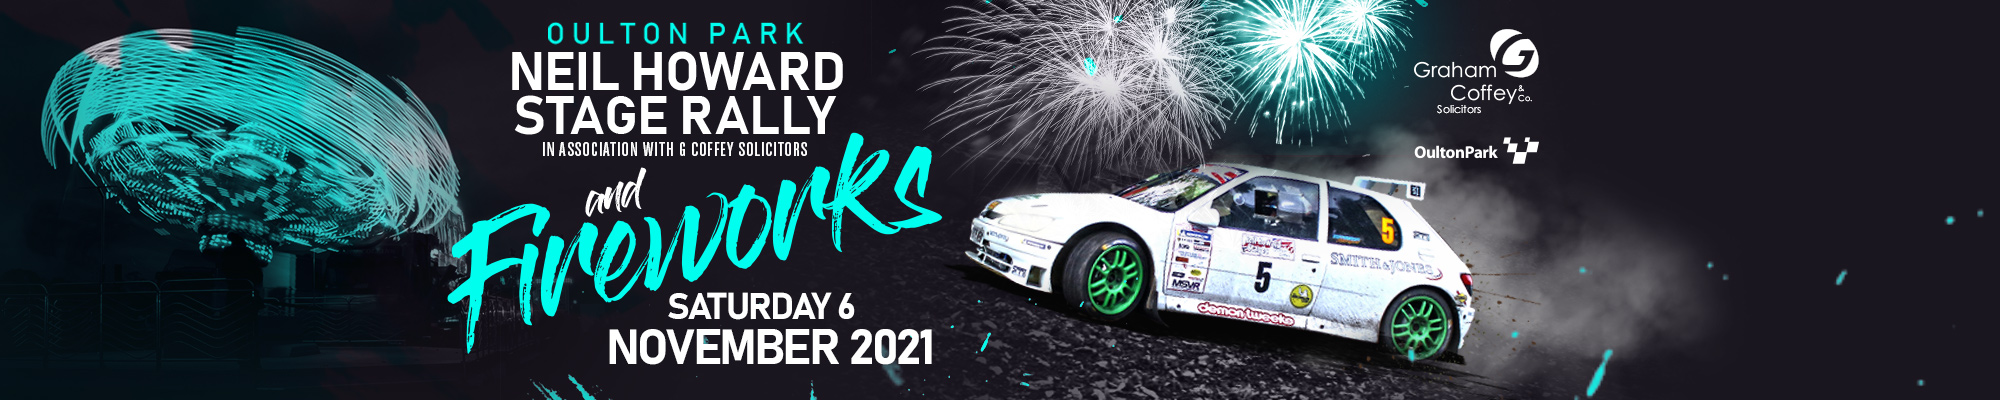 Oulton Park Neil Howard Stage Rally and Fireworks